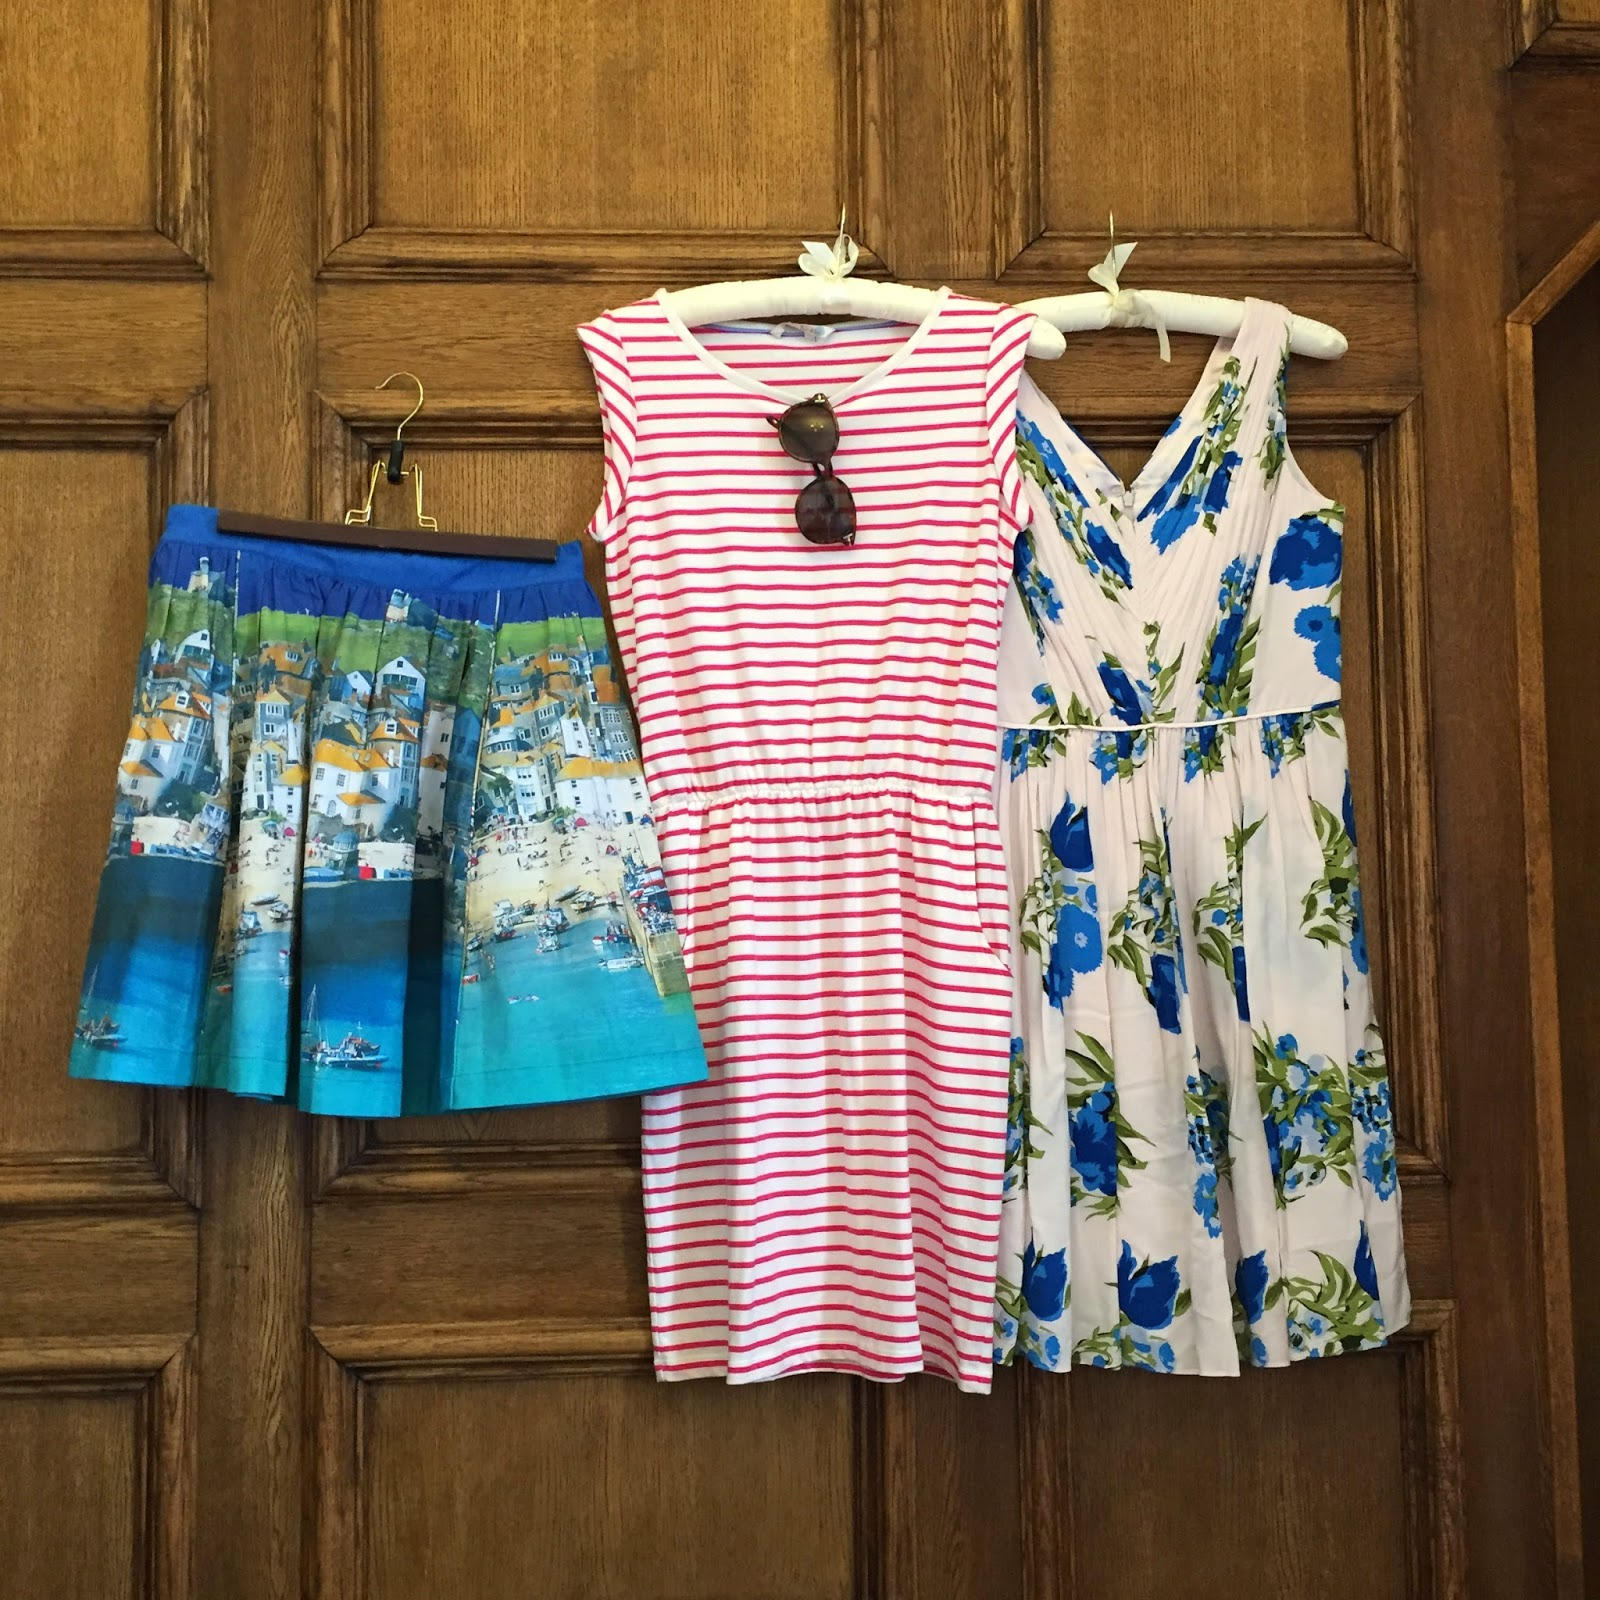 boden ss15 wardrobe travel